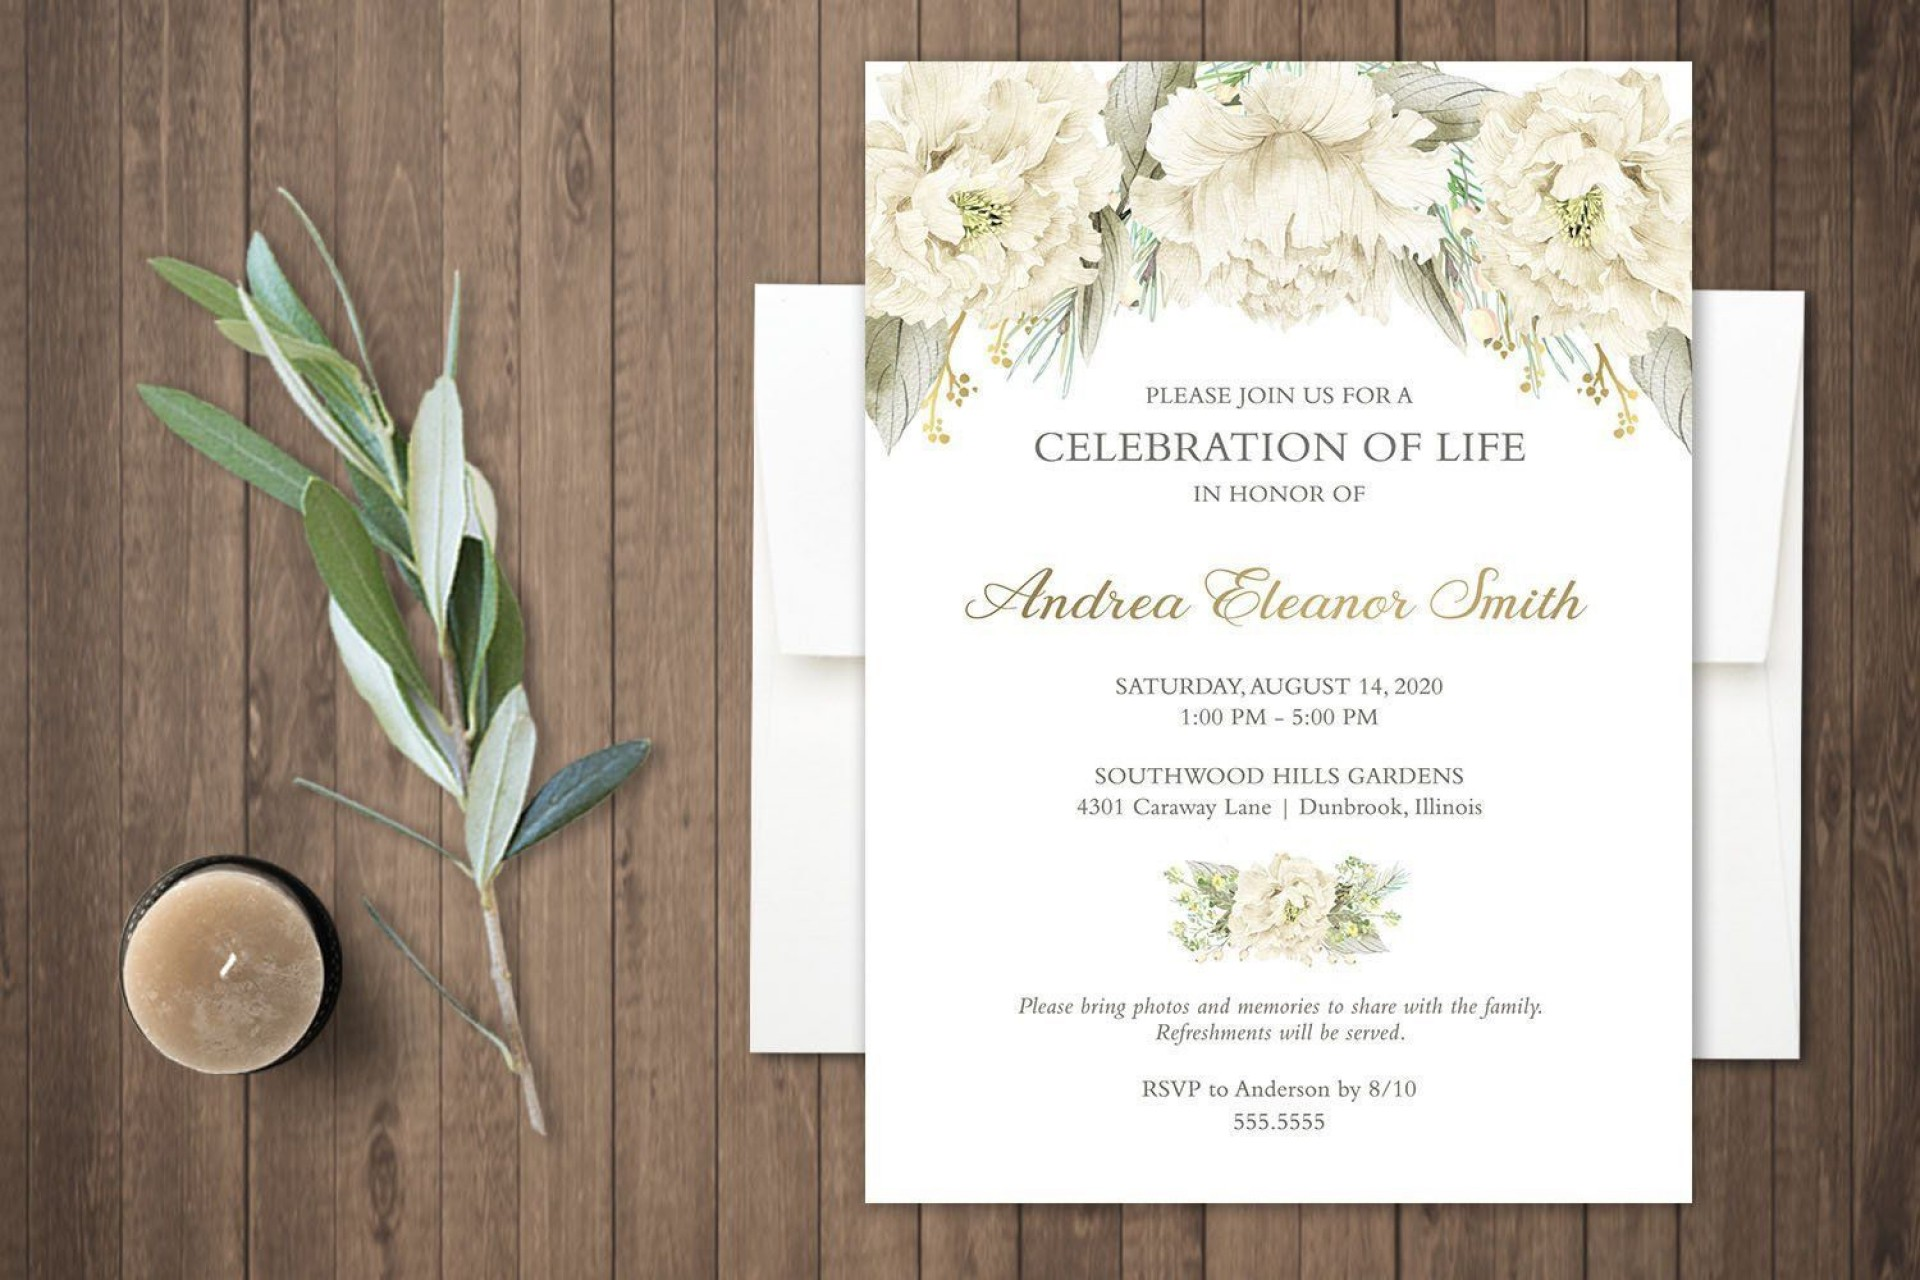 000 Unforgettable Celebration Of Life Announcement Template Free Highest Clarity  Invitation Download Invite1920